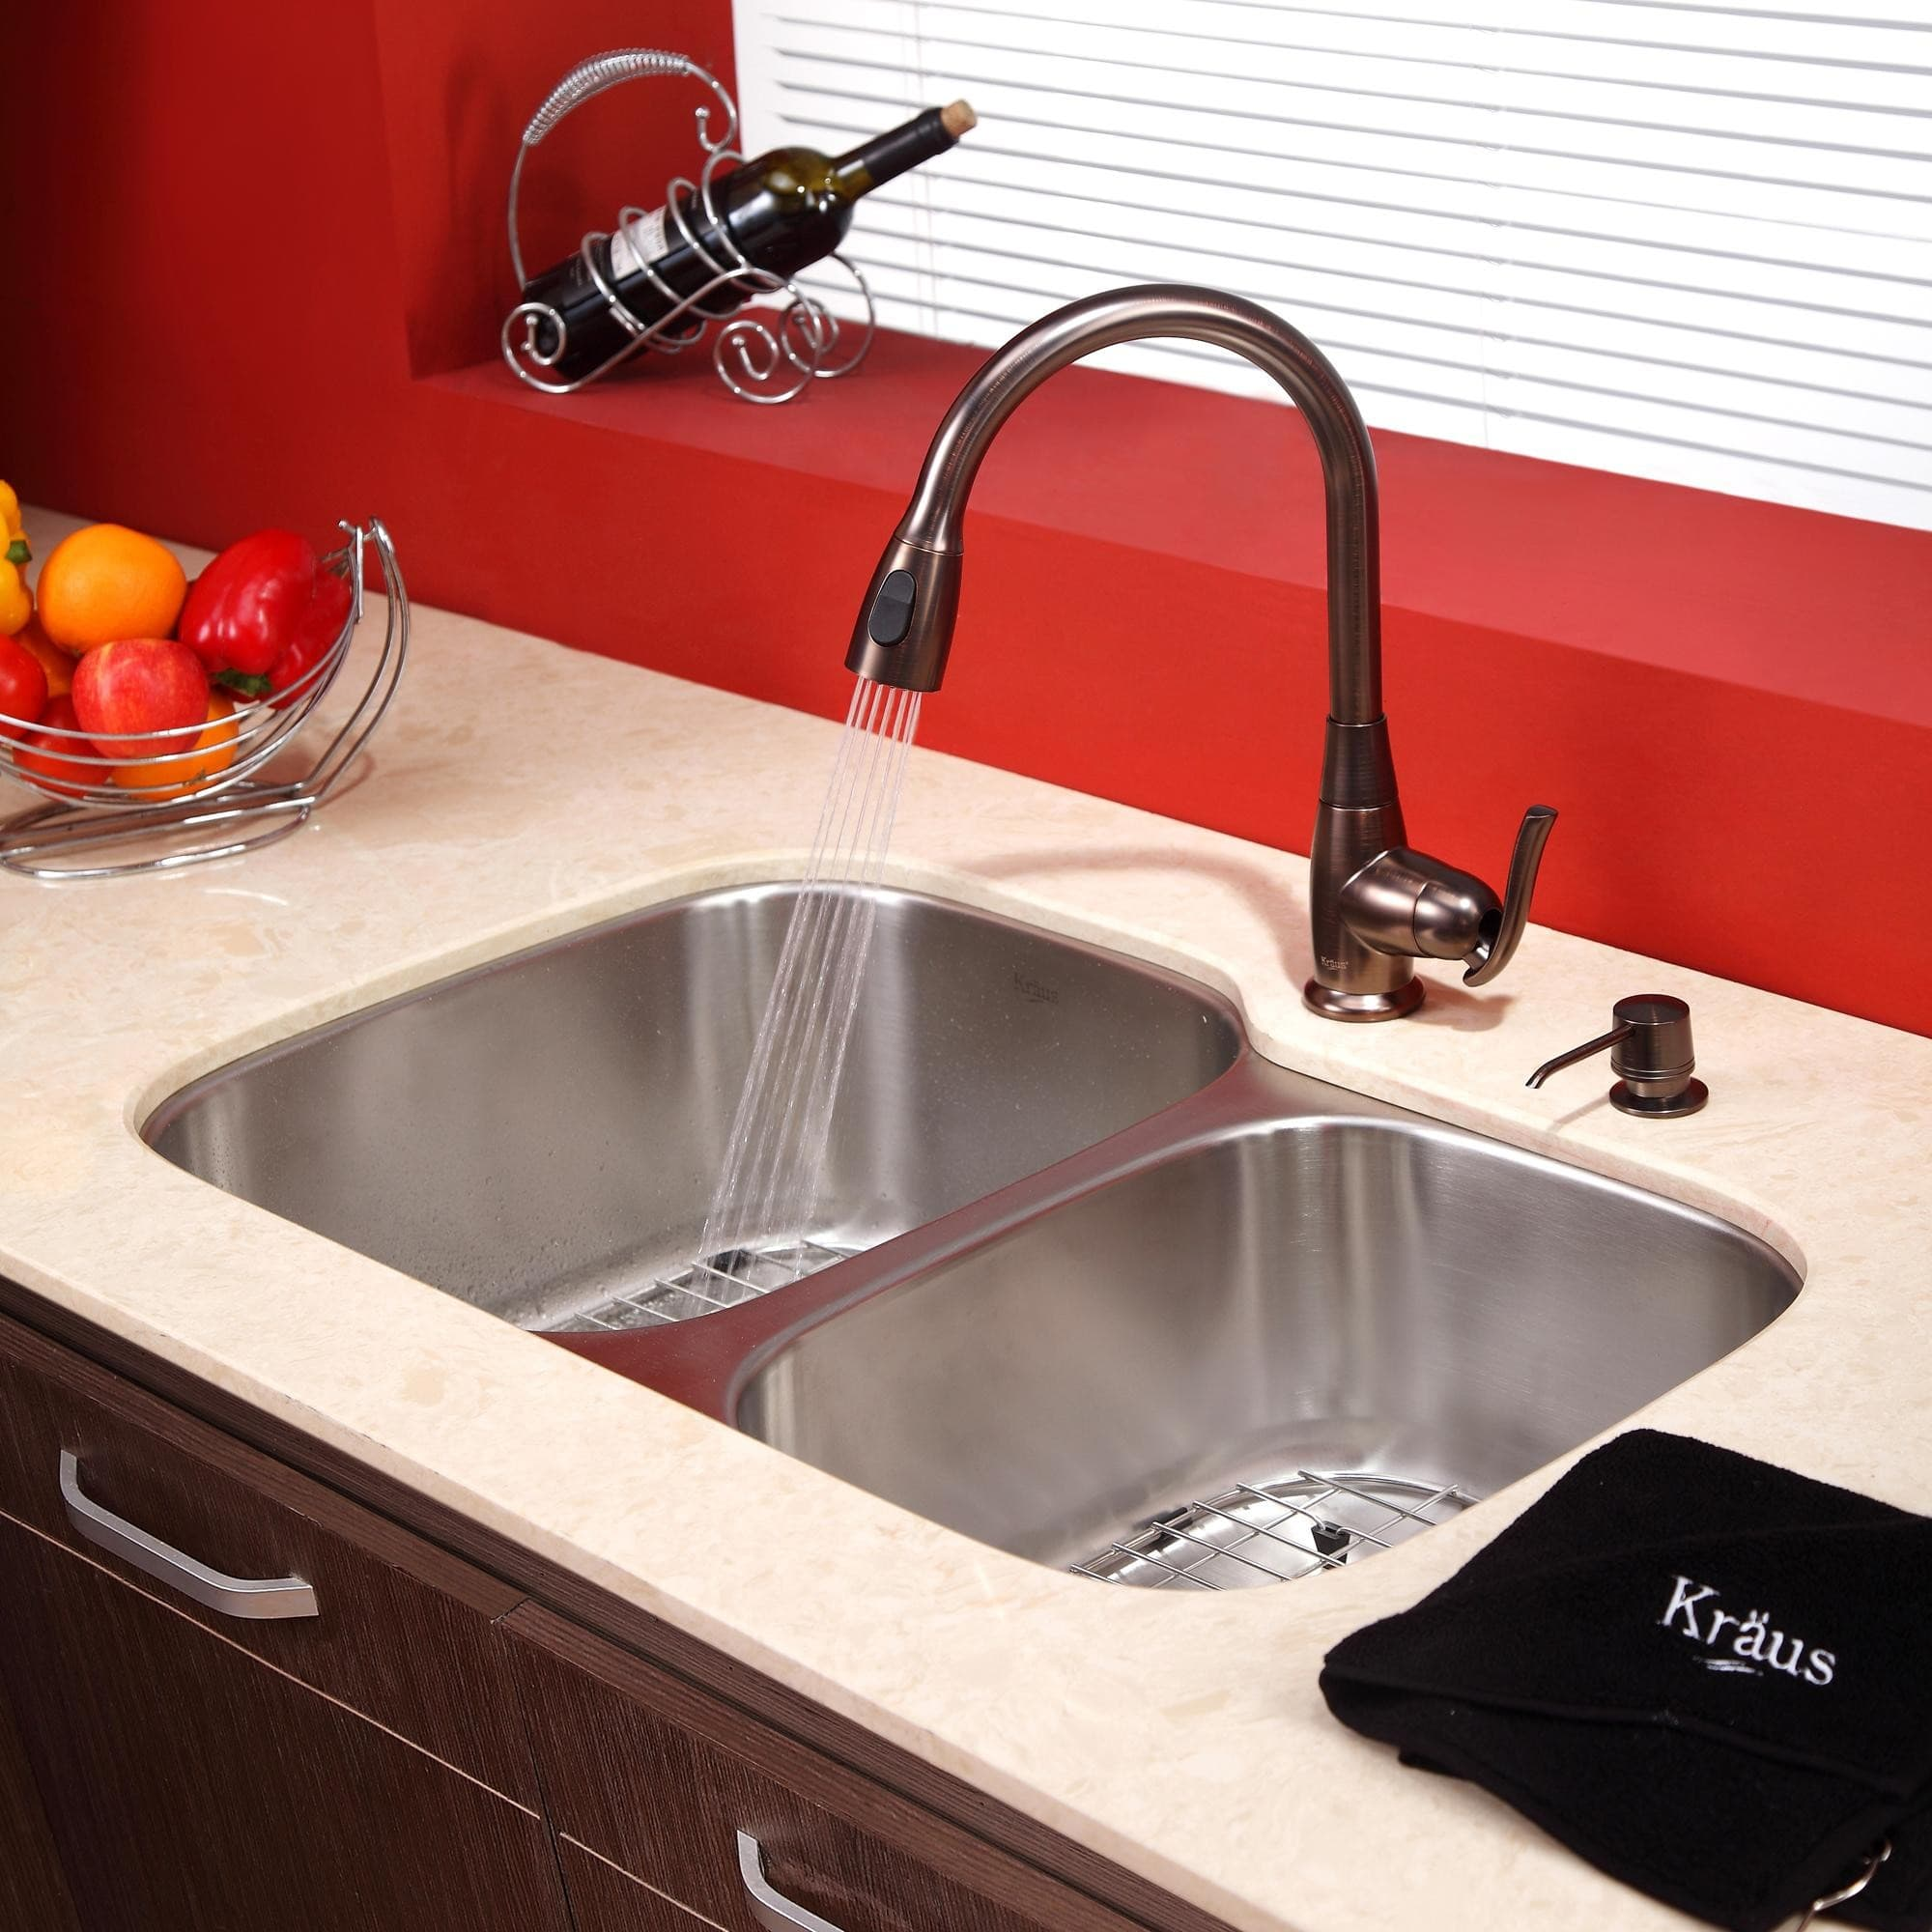 ... Undermount Double Bowl Stainless Steel Sink With Pull Down Faucet,  Hi Arc Spray Head, 2.2 GPM Flow Rate, Basket Strainer, Bottom Grid, Soap  Dispenser ...